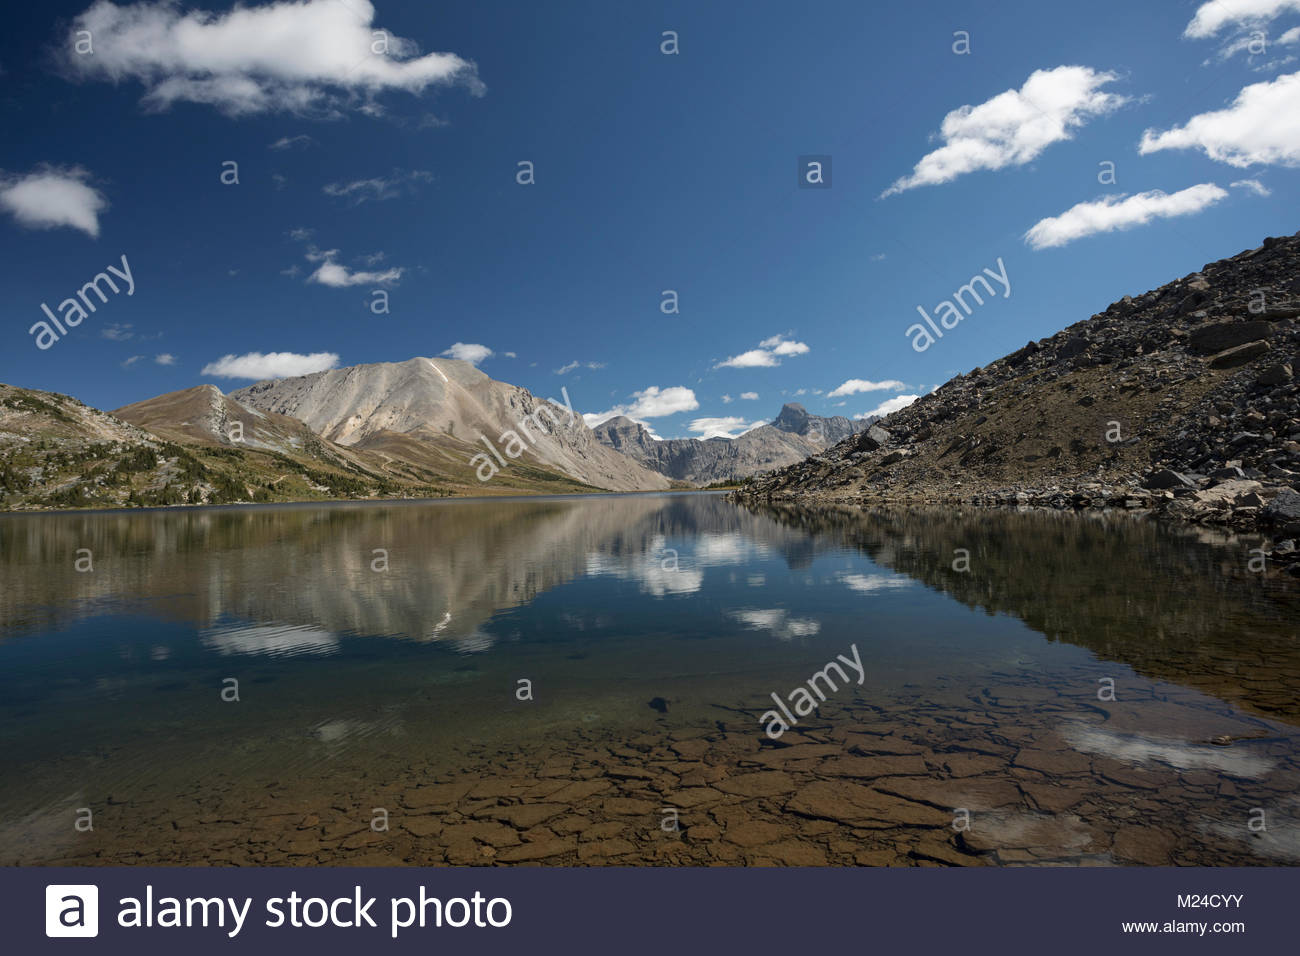 Reflection of clouds and craggy mountains on tranquil, placid lake - Stock Image